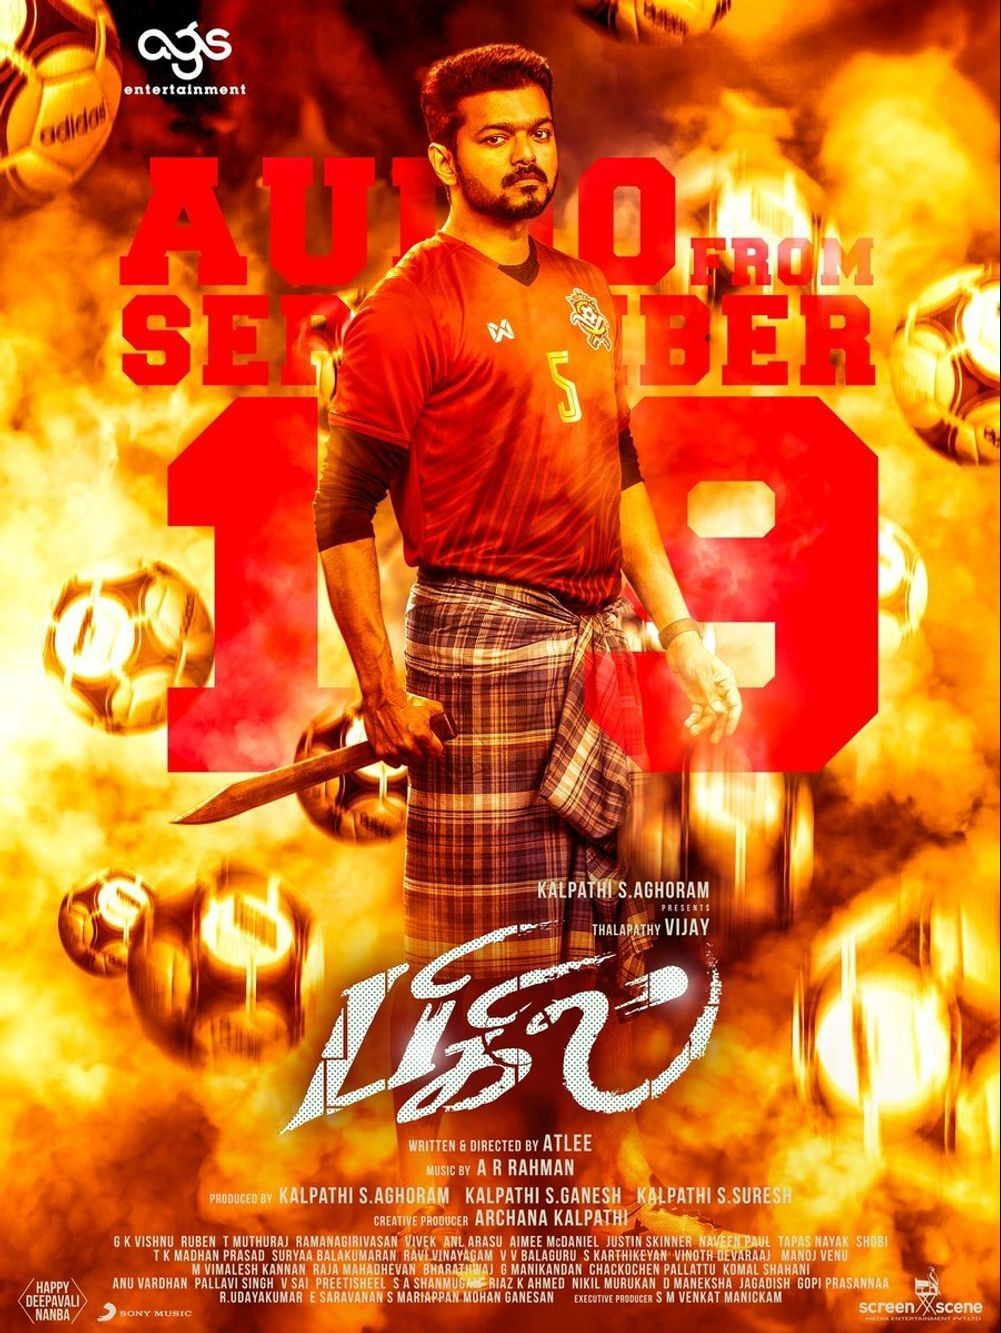 Bigil Movie Latest HD Photos & Posters, Wallpapers Download (1080p) (47115) - Bigil, Vijay